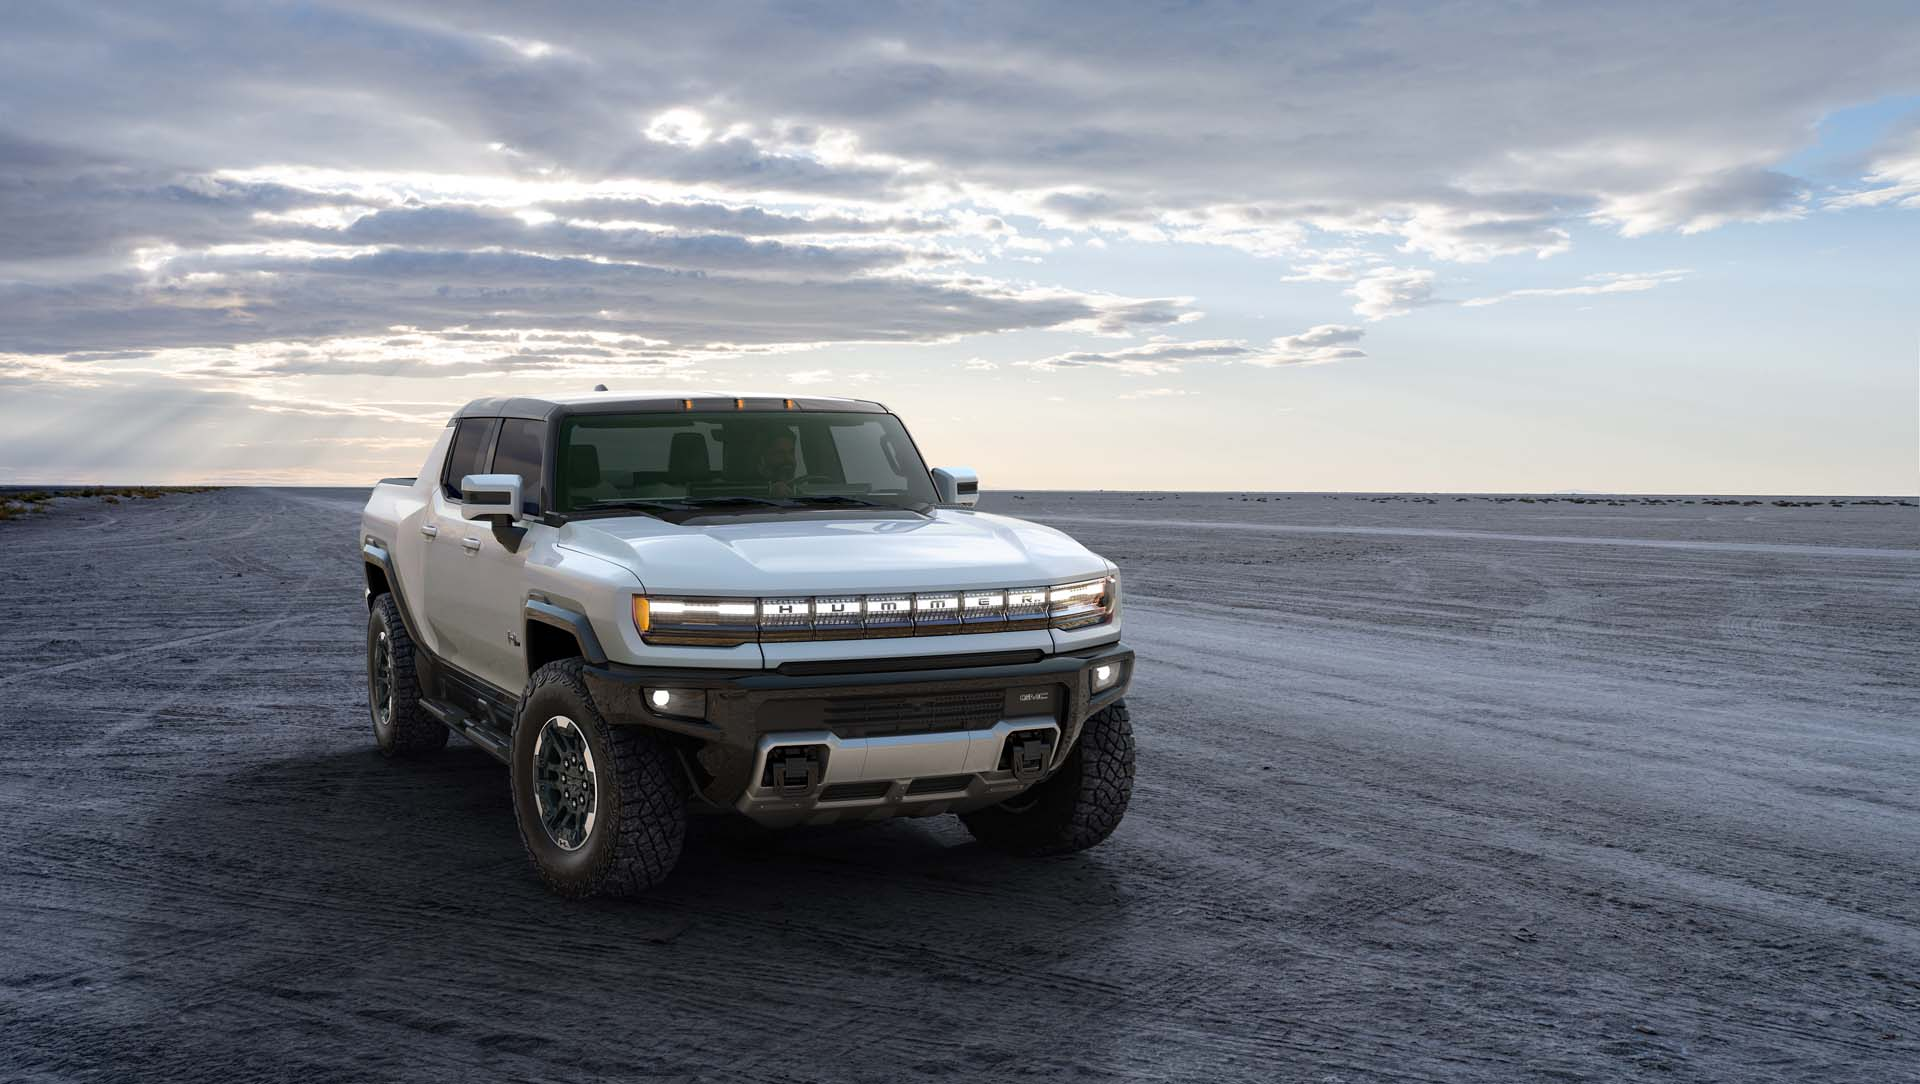 2022 Gmc Hummer Ev Review Ratings Specs Prices And Photos The Car Connection